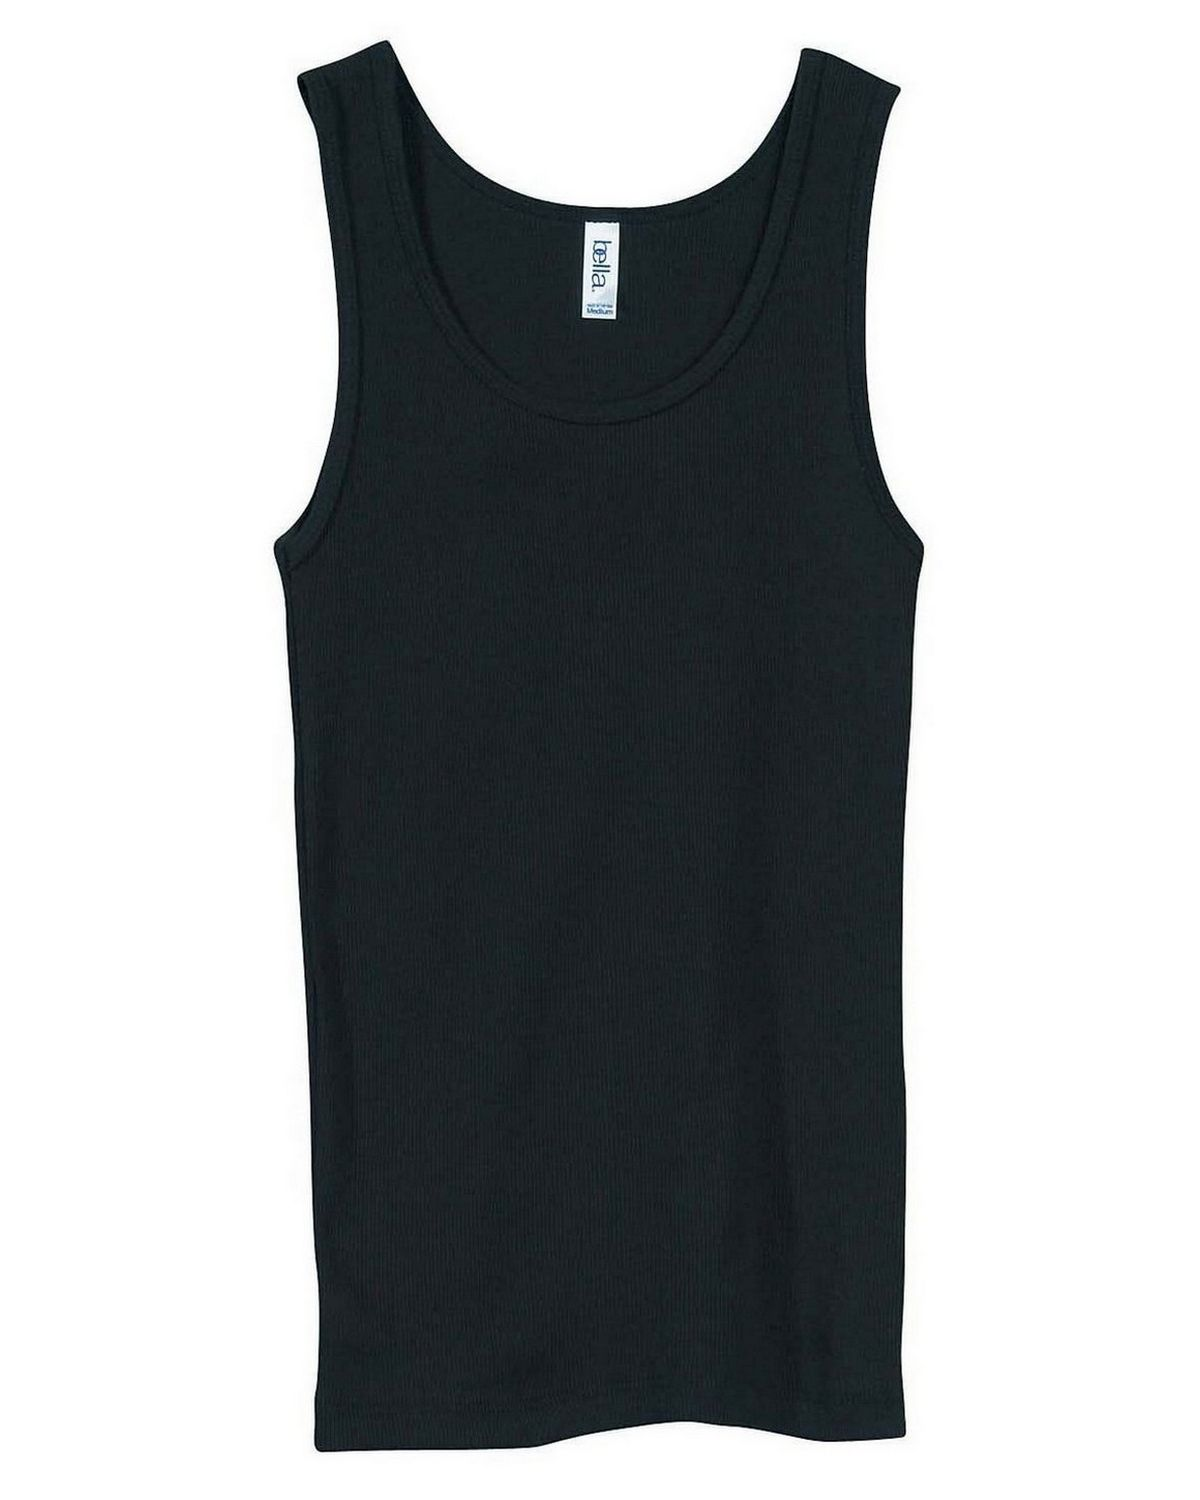 Bella + Canvas 4000 Ladies 2x1 Rib Tank - Black - M 4000